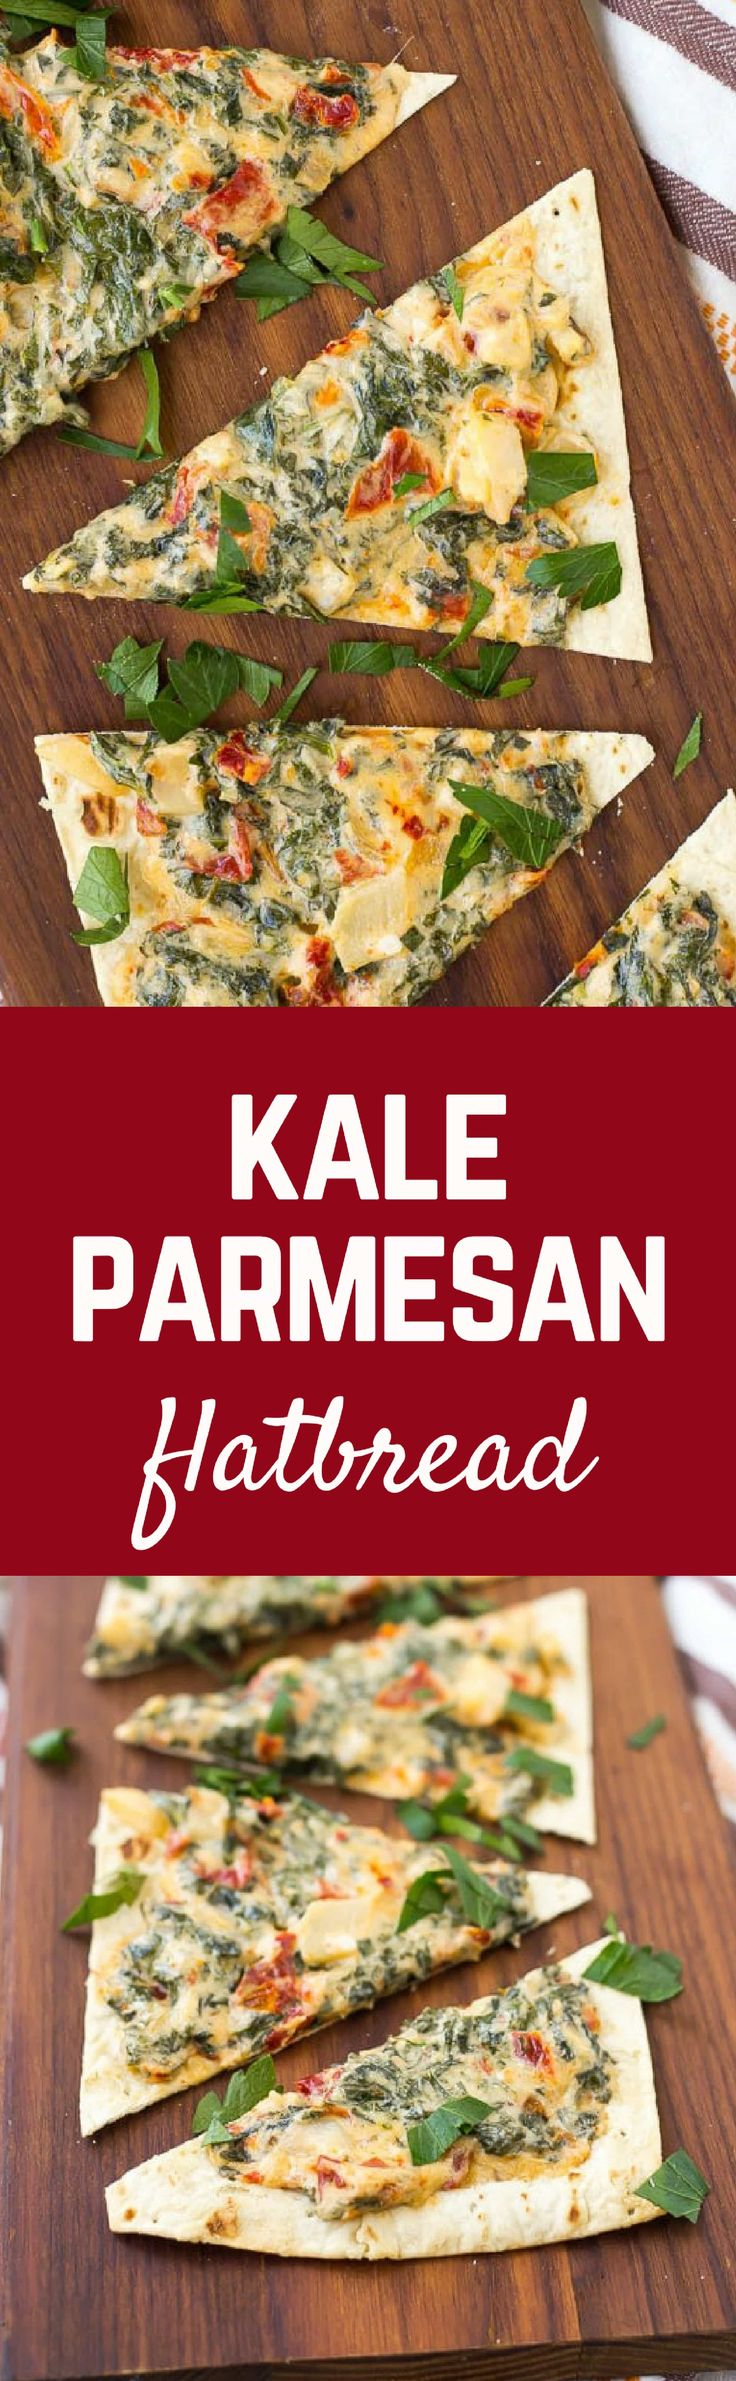 Kale Flatbread with Parmesan and Sundried Tomatoes is a quick and easy lunch or a fun appetizer for any gathering. It's packed with flavor and nutrition! Get the recipe on RachelCooks.com!